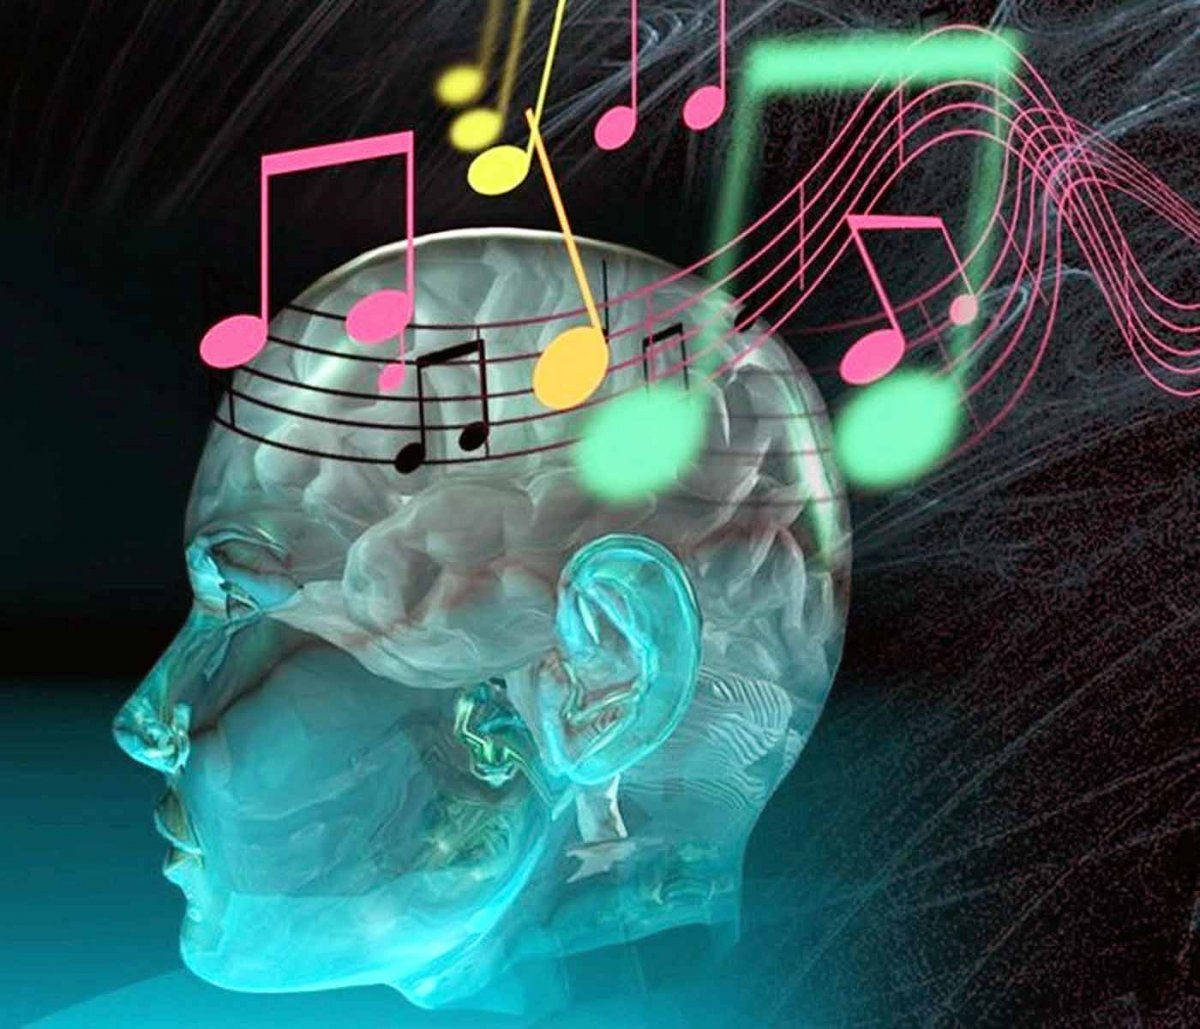 brain surrounded by music staffs and music notes